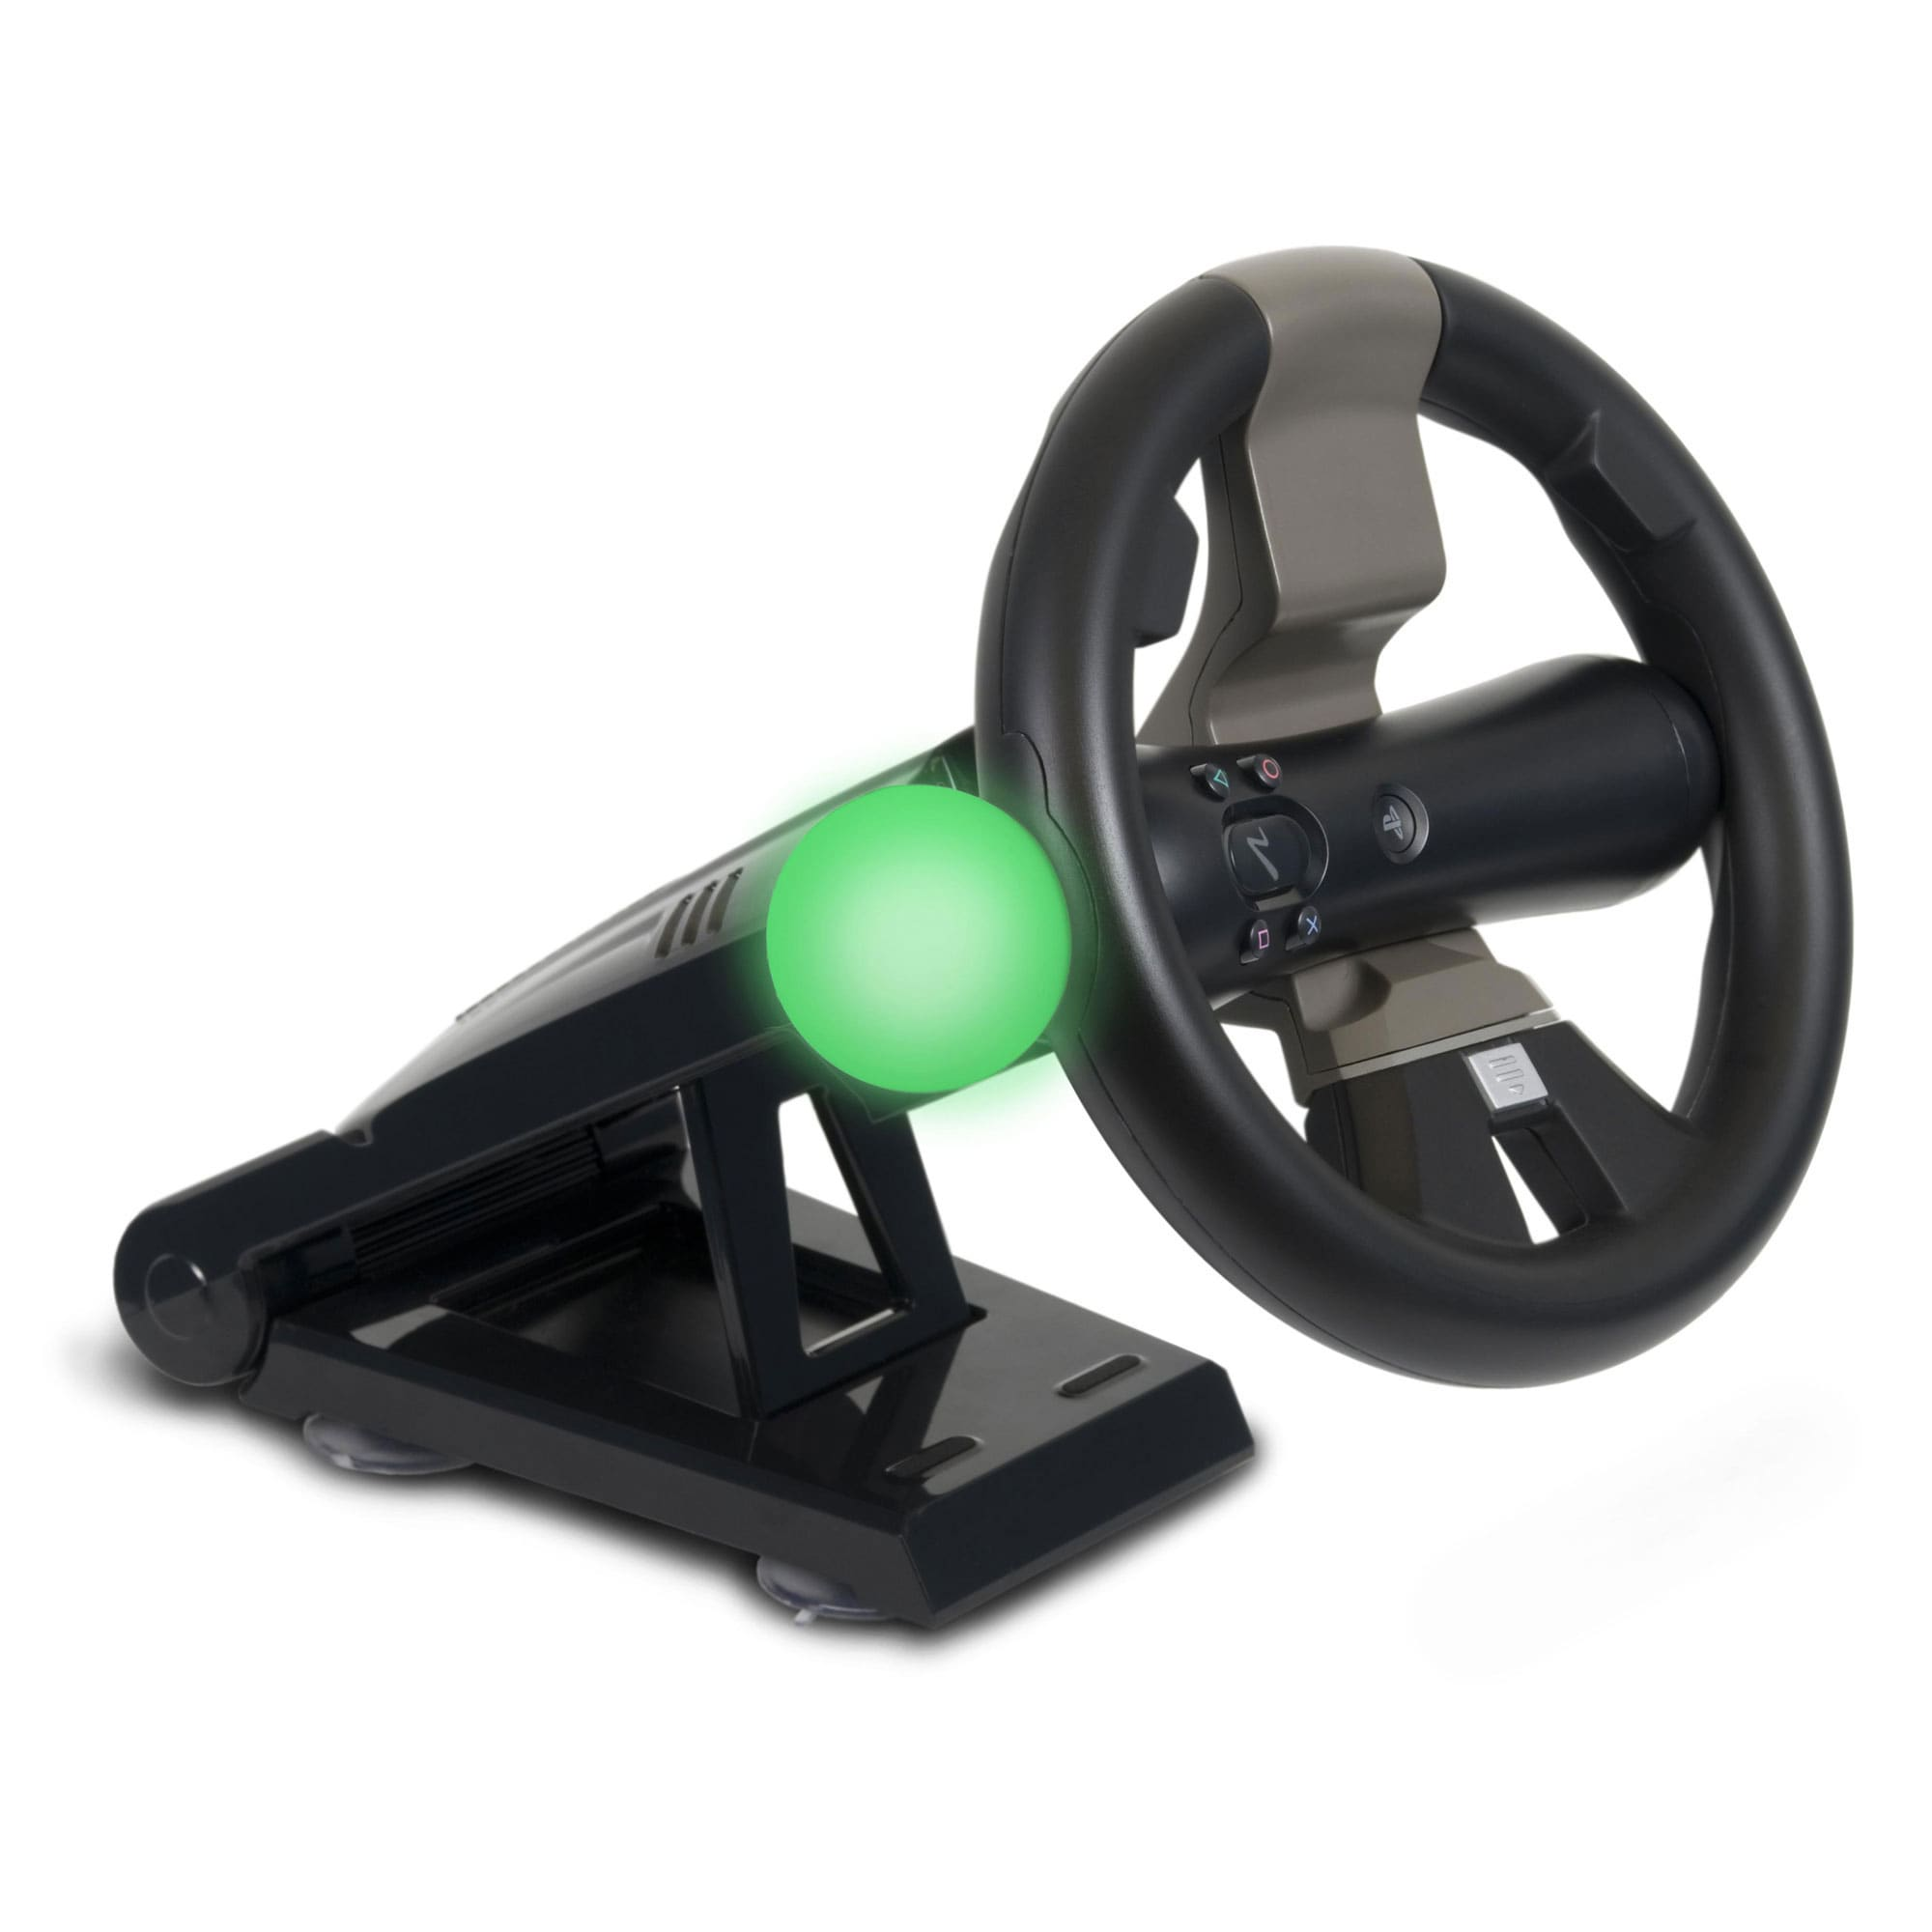 PlayStation Move and DualShock Racing Wheel with Stand